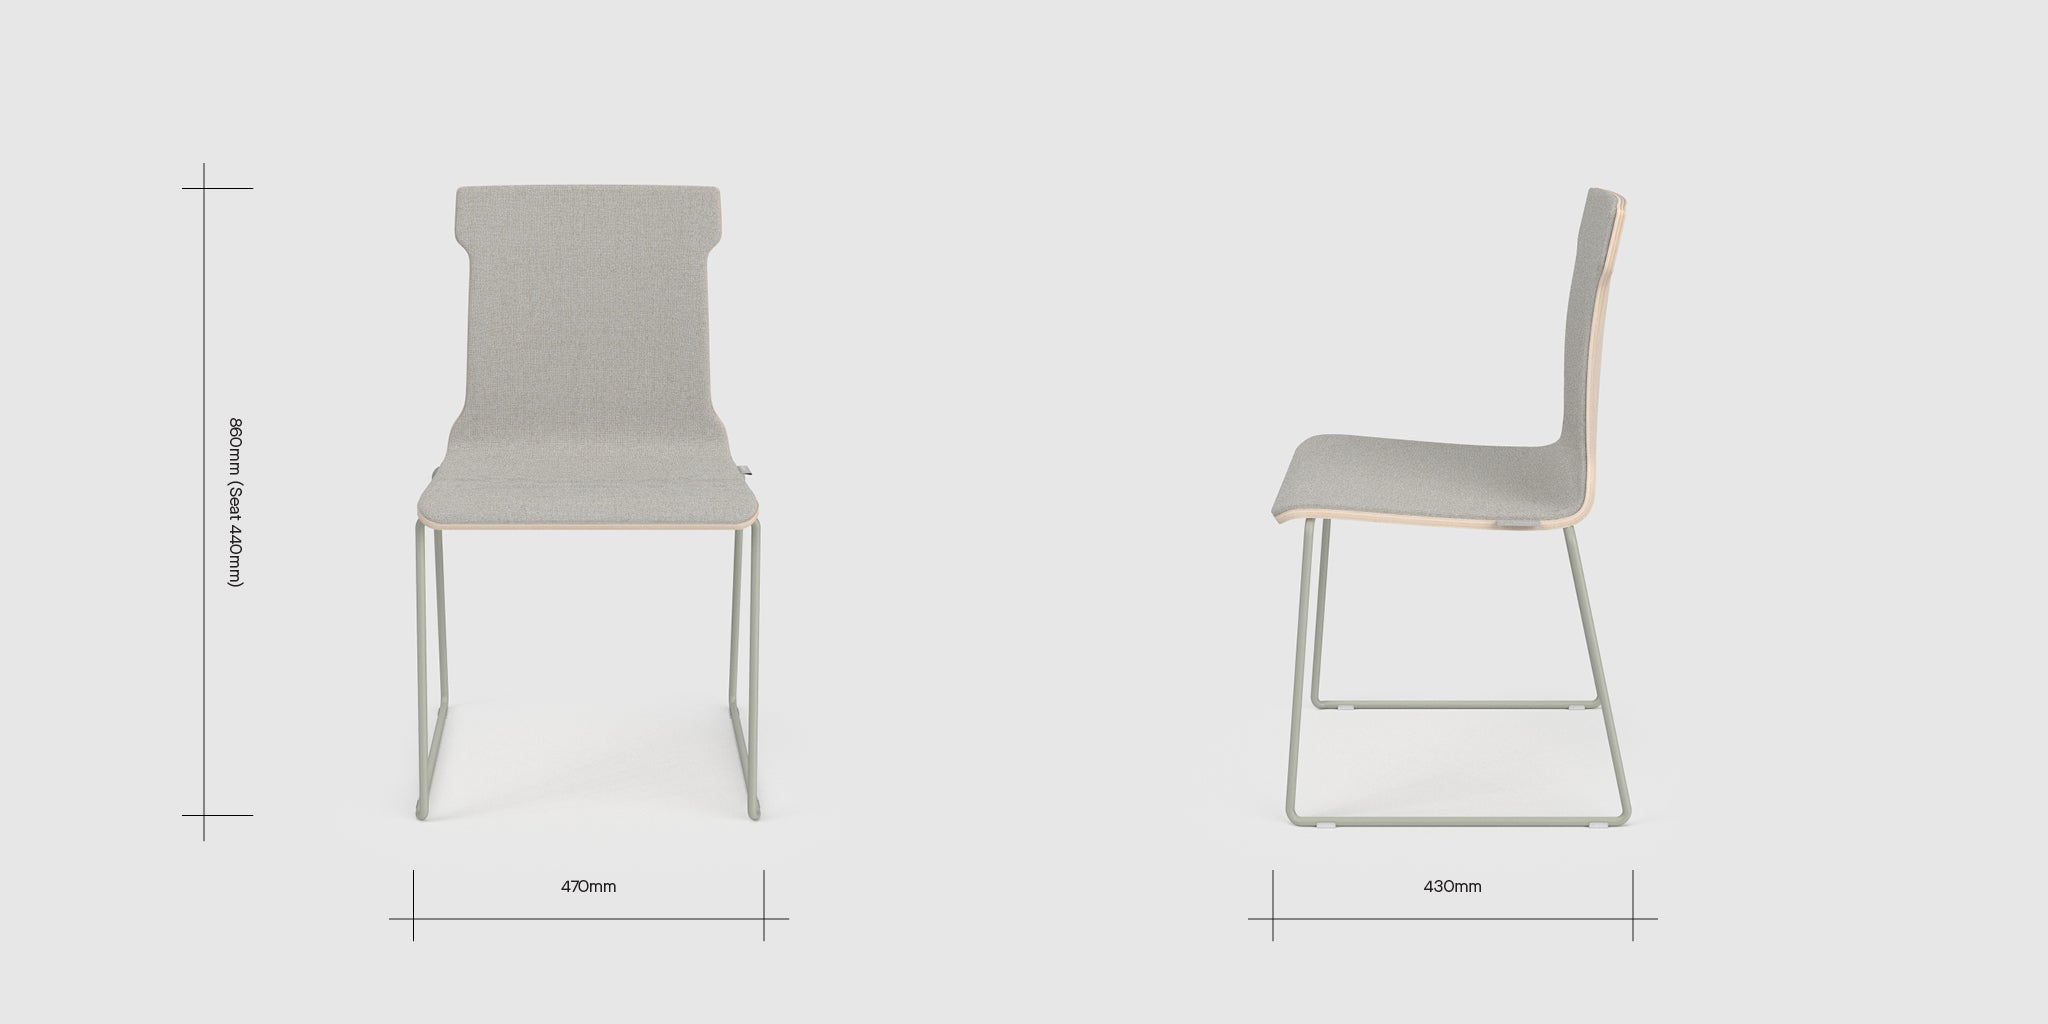 Konverse Upholstered Chair Dimensions